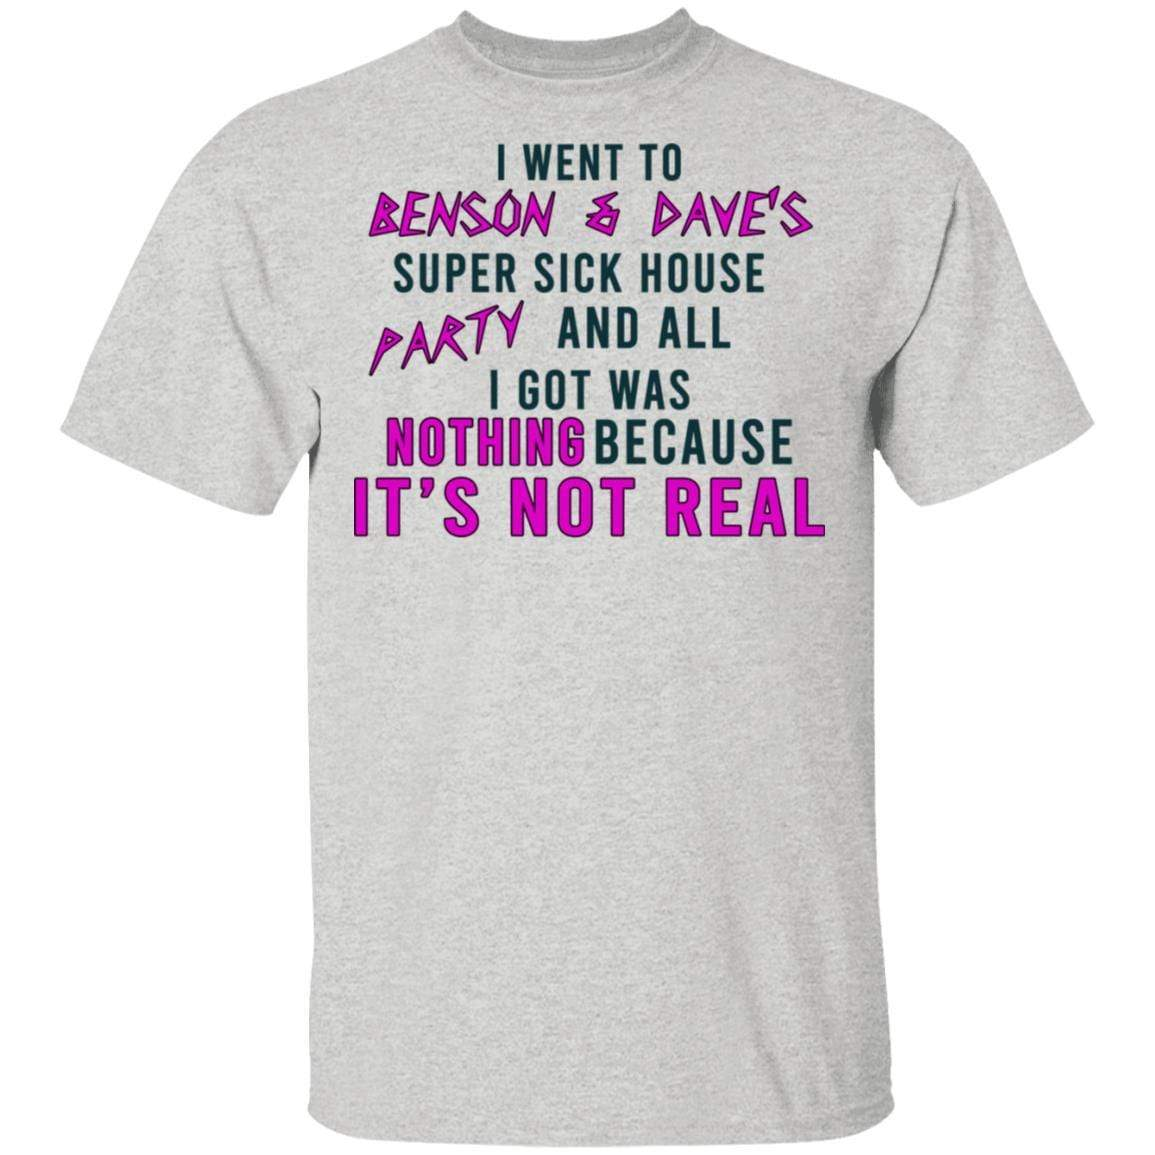 I Went To Benson & Dave's Super Sick House Party And All I Got Was Nothing Because It's Not Real T-Shirts, Hoodies 1049-9952-87390858-48184 - Tee Ript